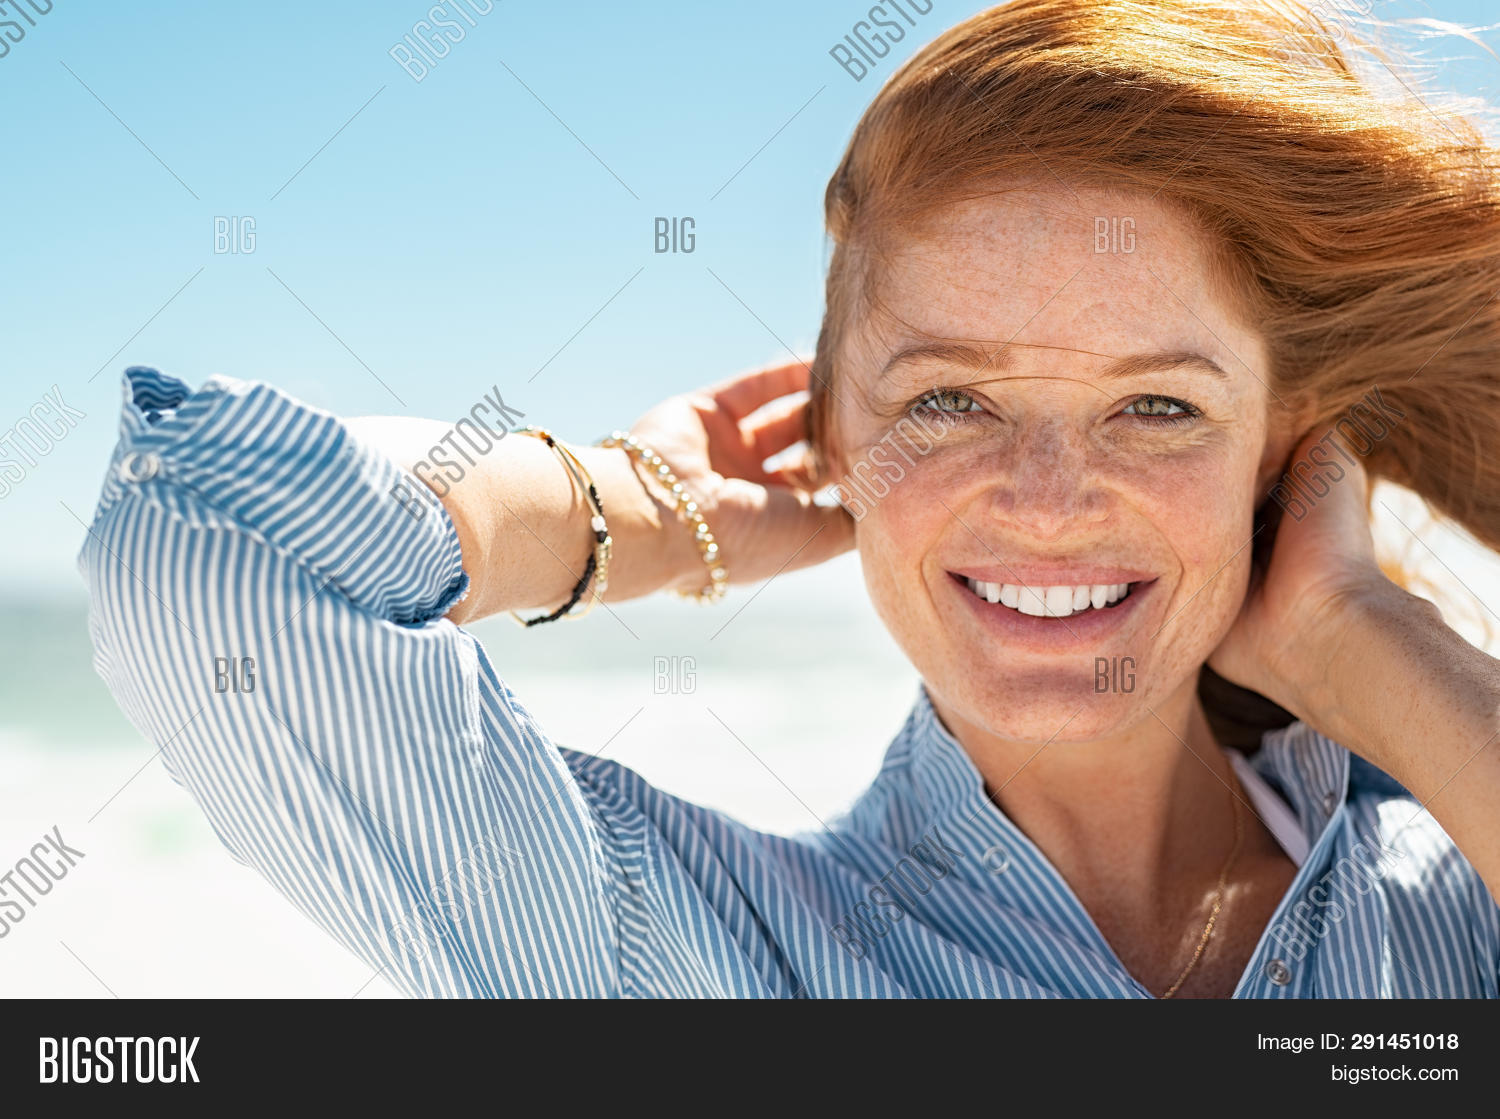 attractive,beach,beautiful,beautiful woman,beauty,breeze,candid,care,carefree,carefree woman,casual,caucasian,cheerful,closeup,complexion,daydreaming,enjoy,face,freckle face,freckles,fresh,fun,girl,hair,happy,healthy,looking,looking at camera,mature,mid adult woman,middle aged woman,natural,outdoor,people,portrait,red,red hair,relax,sea,seaside,skin,skin care,skincare,smiling,summer,sun,sunbathing,toothy smile,wind,young